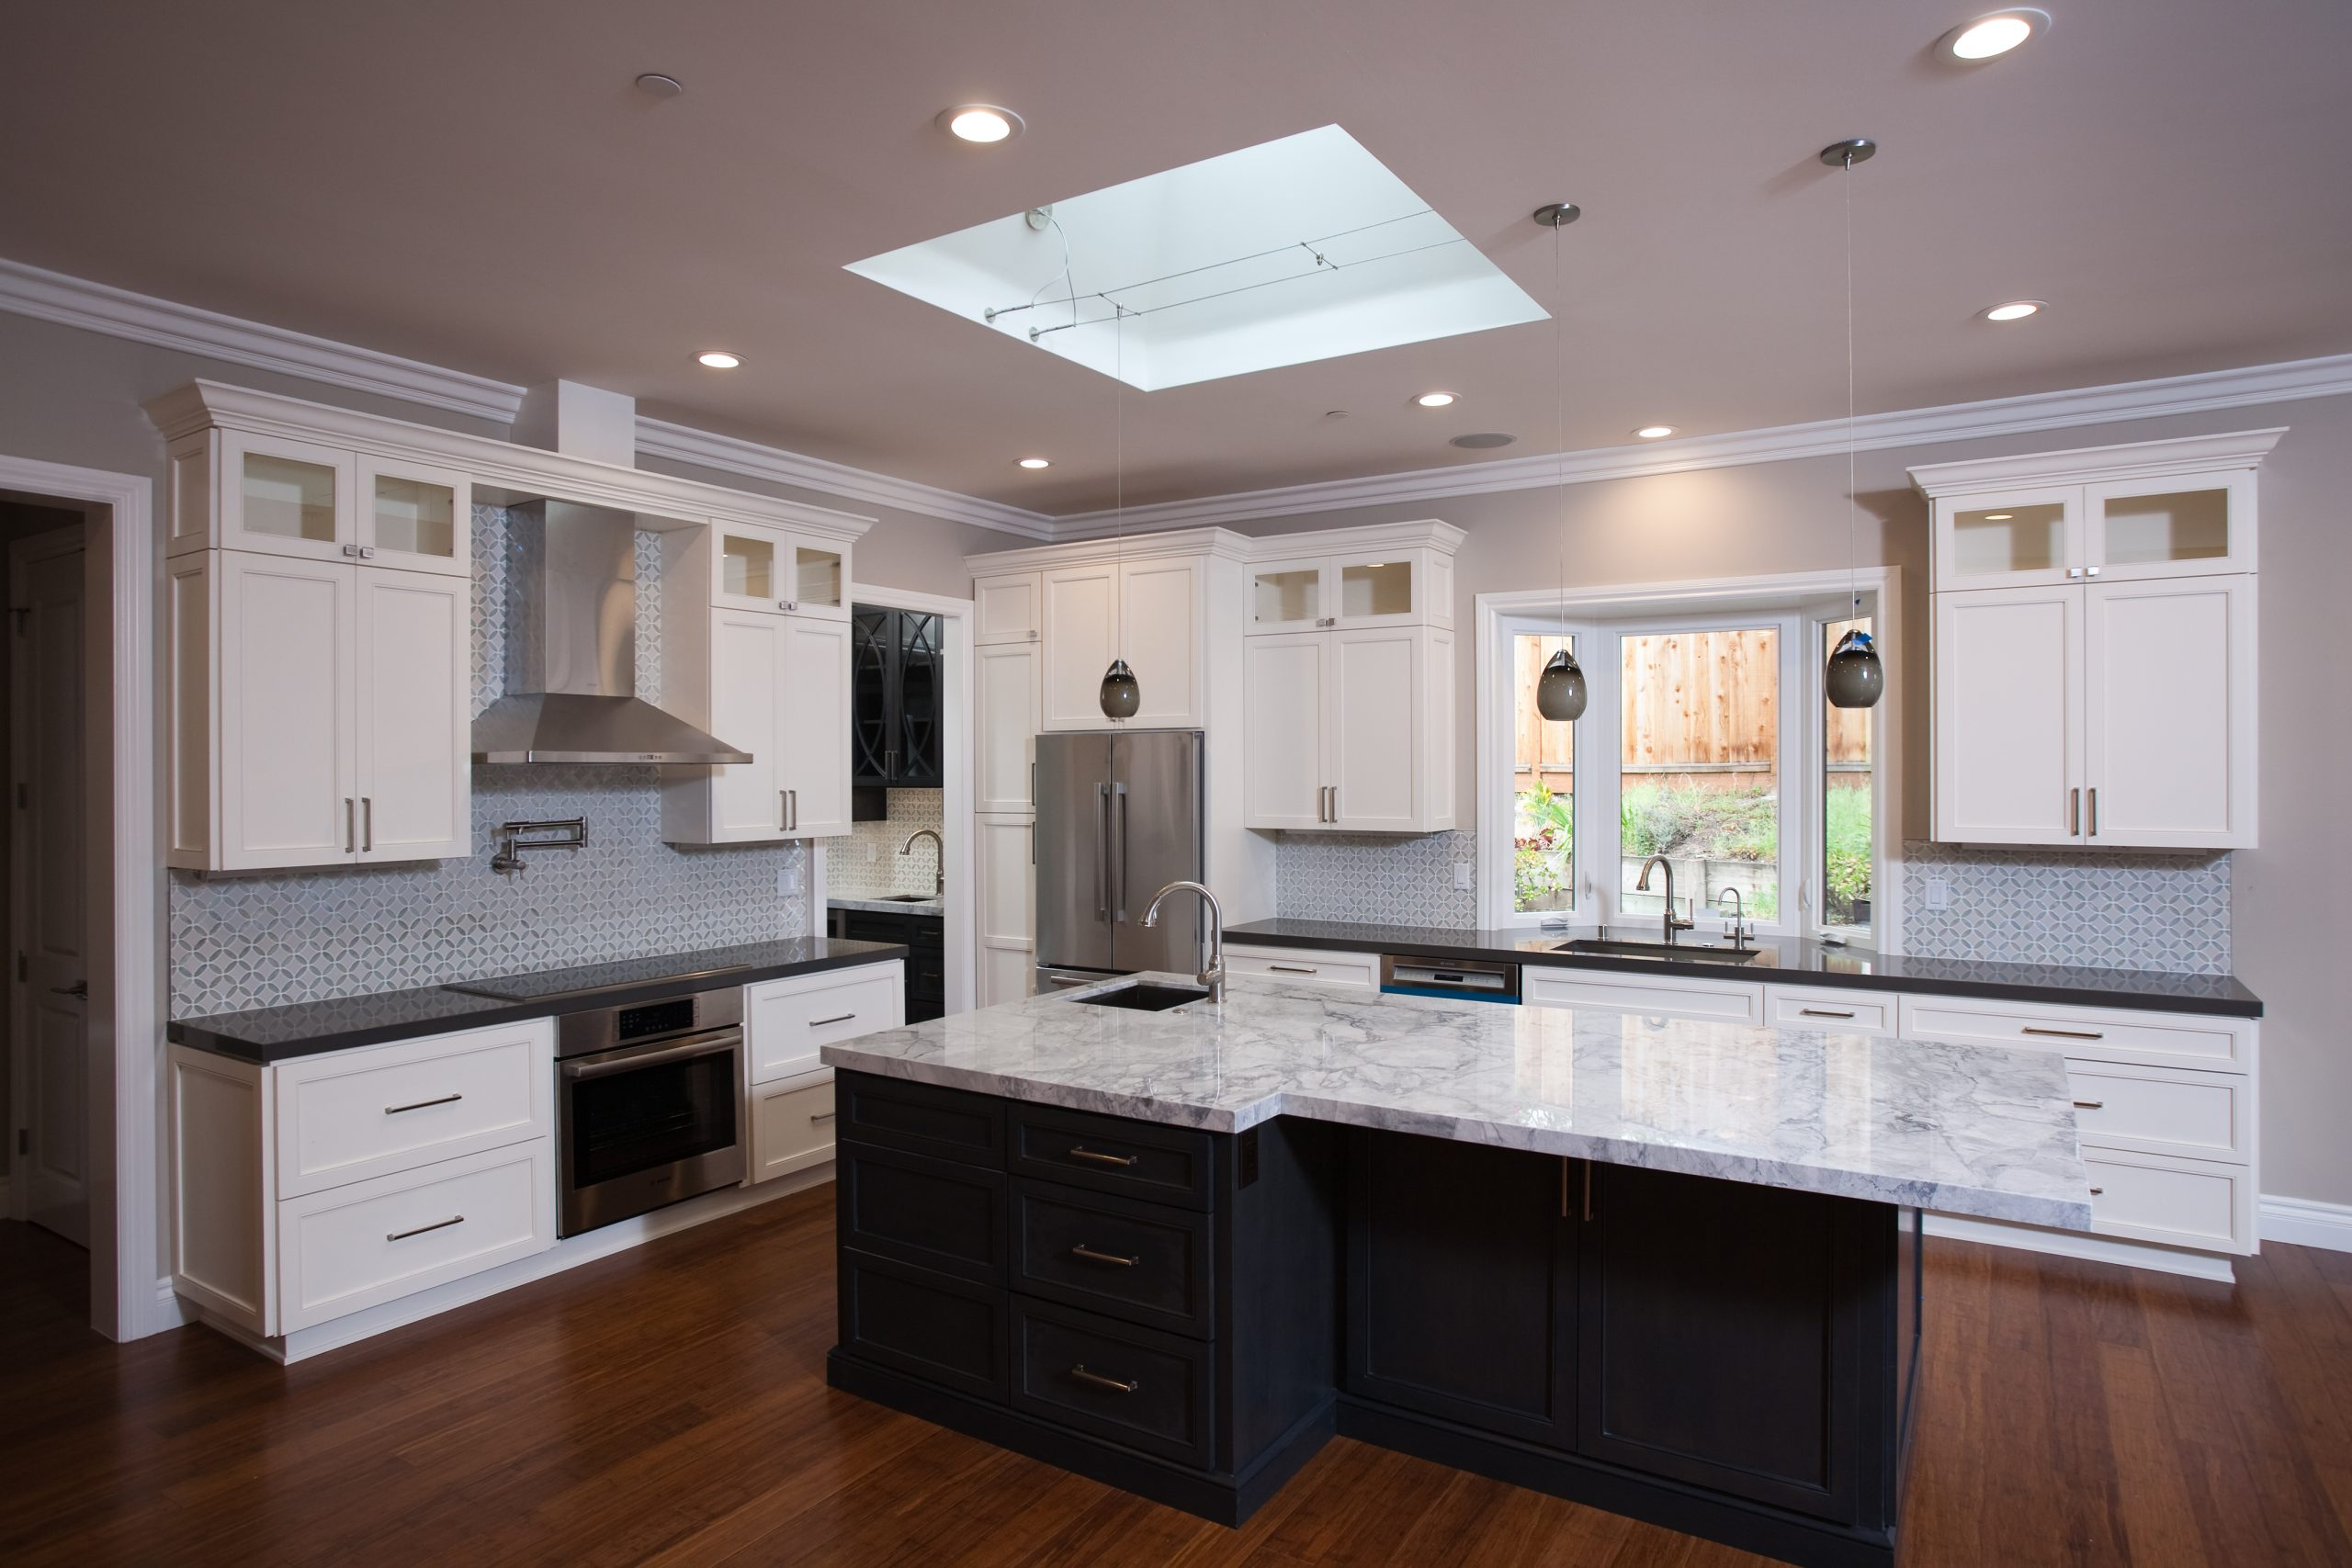 An updated kitchen with a large granite kitchen island and new steel appliances.